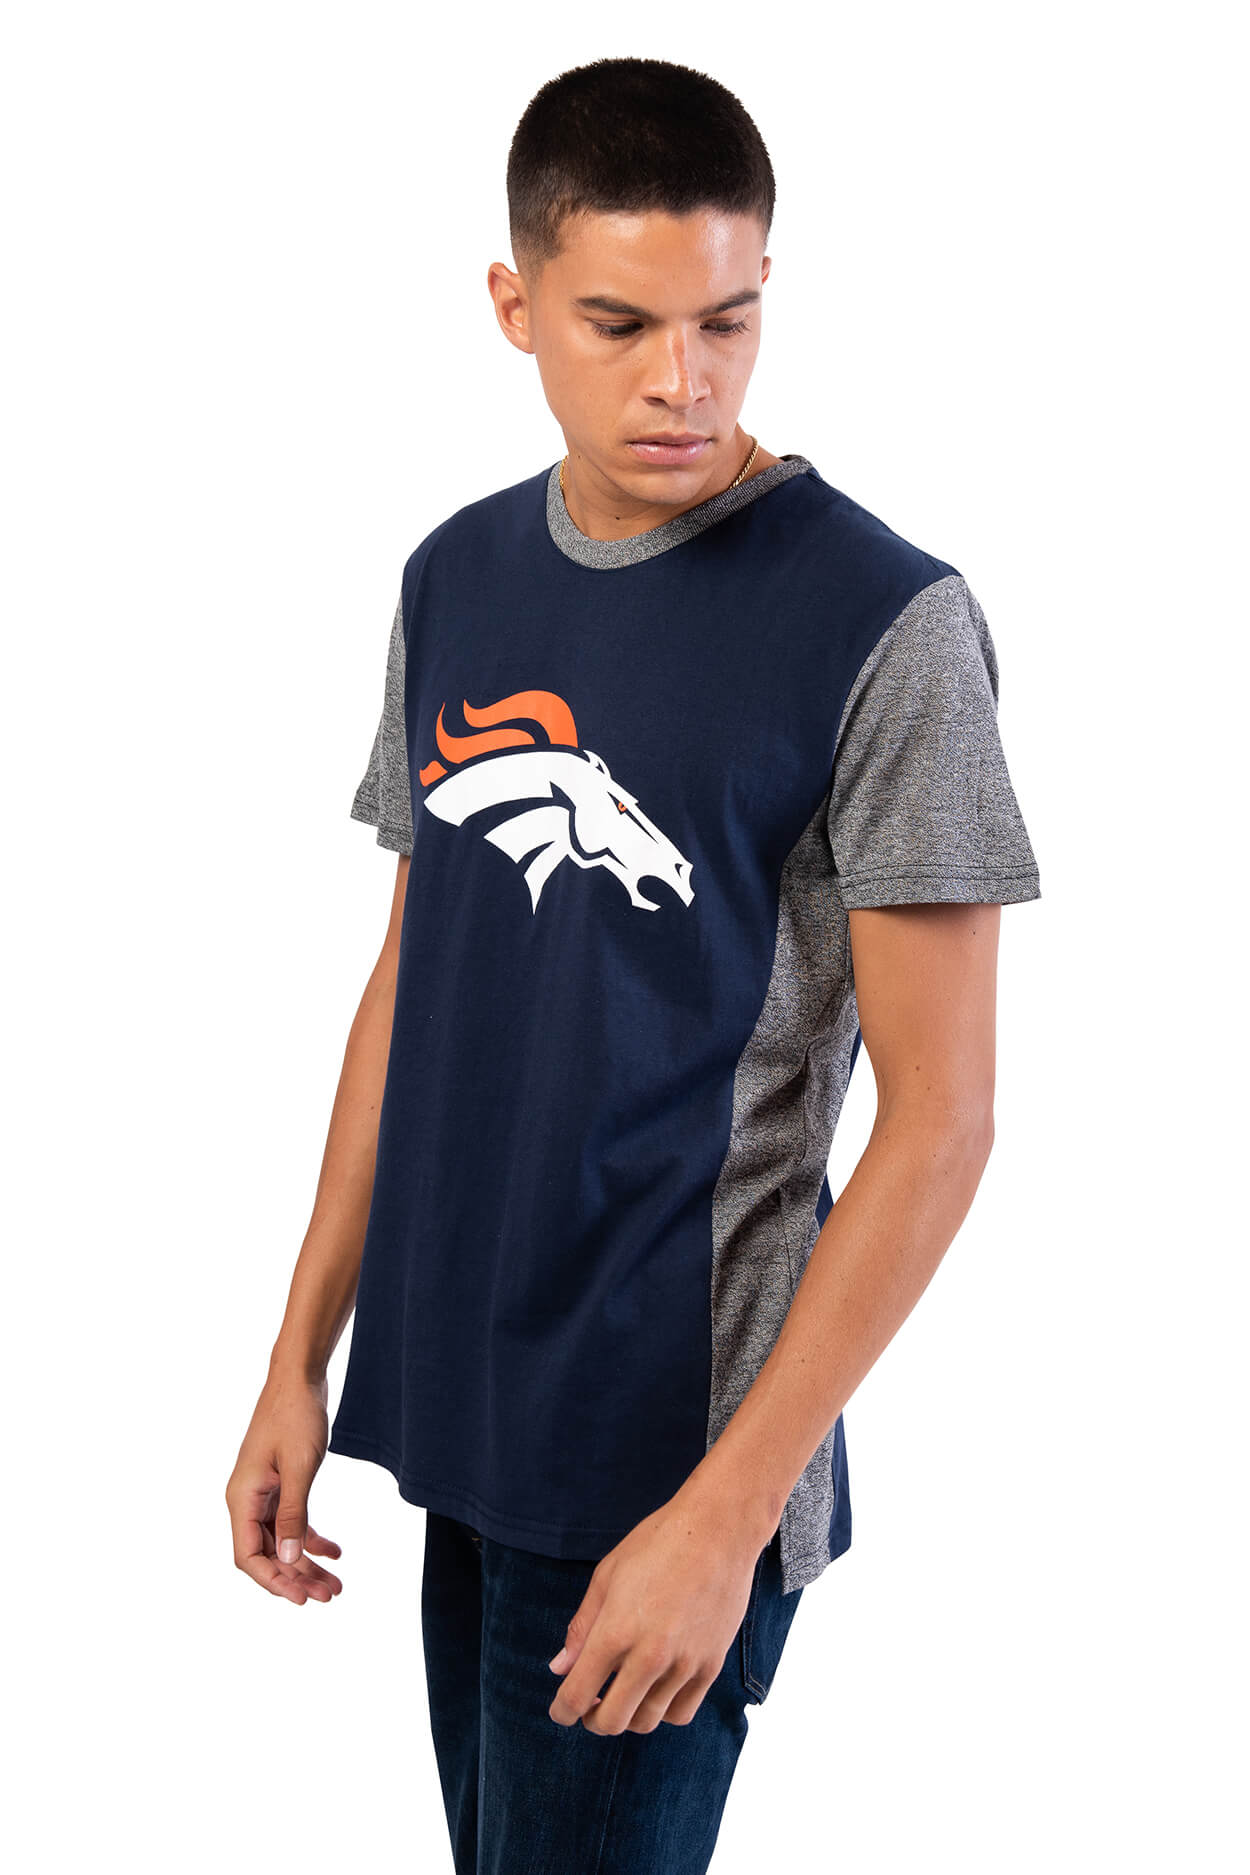 NFL Denver Broncos Men's Raglan Short Sleeve Tee|Denver Broncos